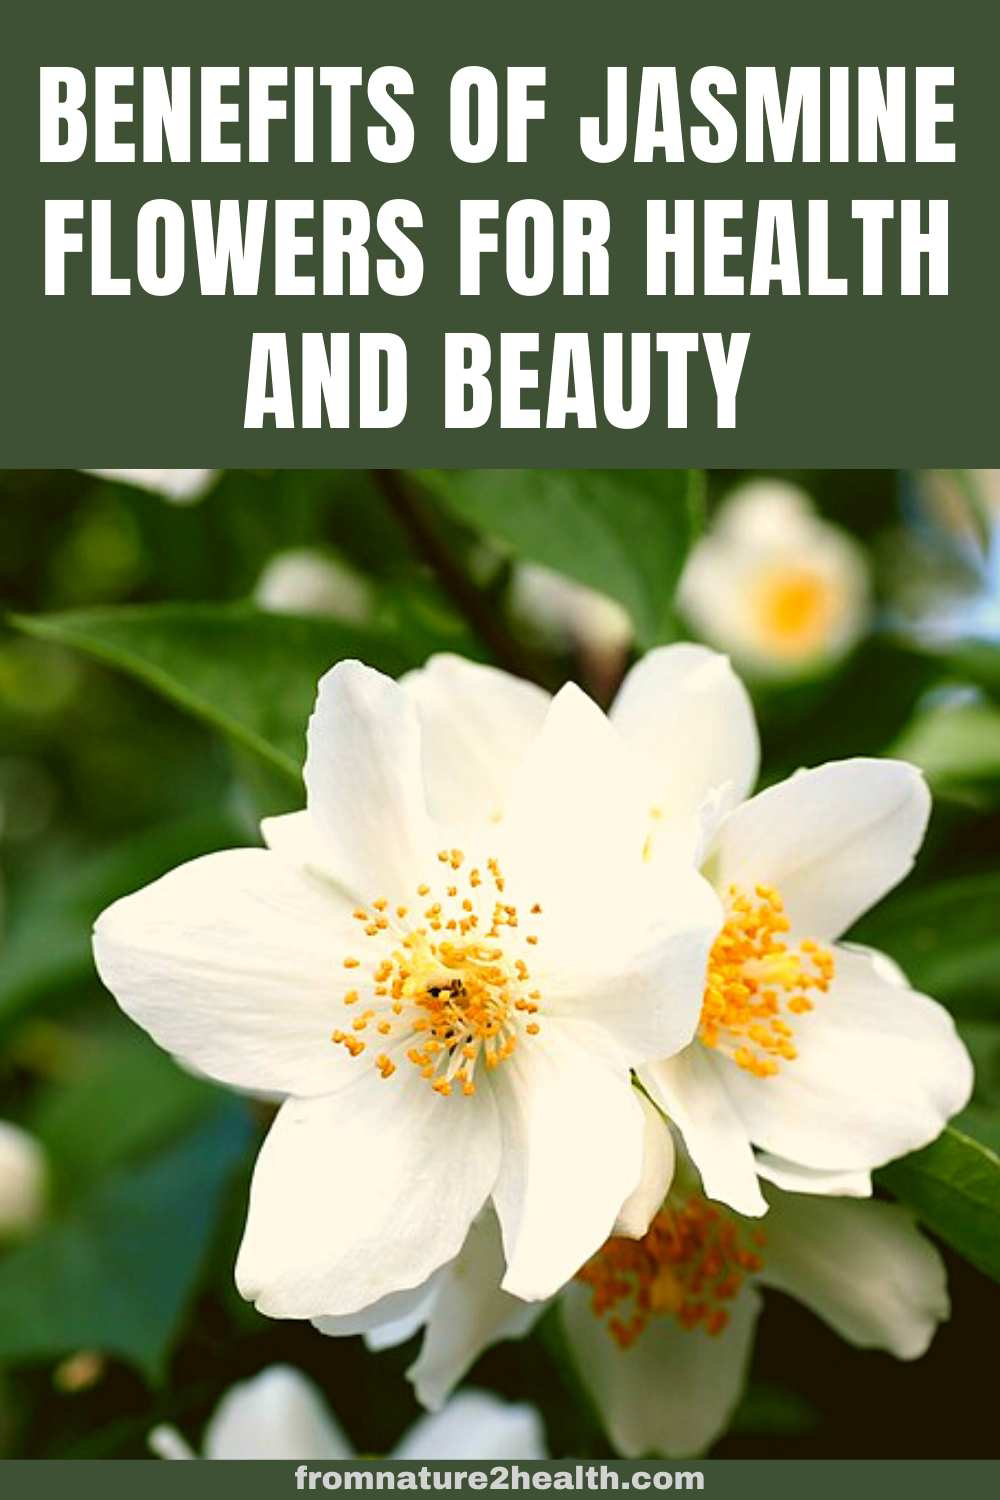 Benefits of Jasmine Flowers for Health and Beauty